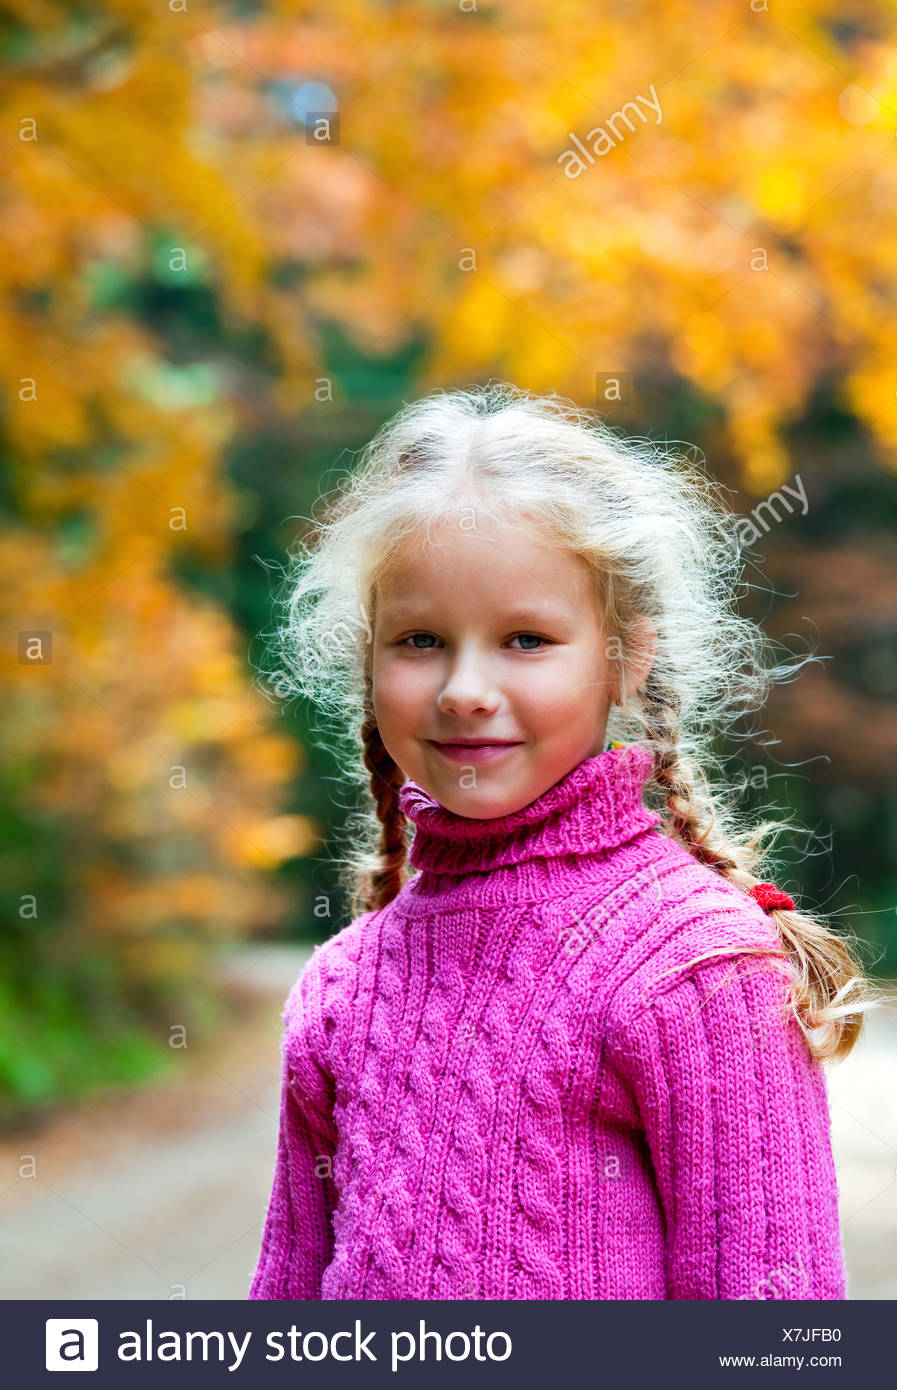 Schoolage girl autumn outdoor portrait - Stock Image